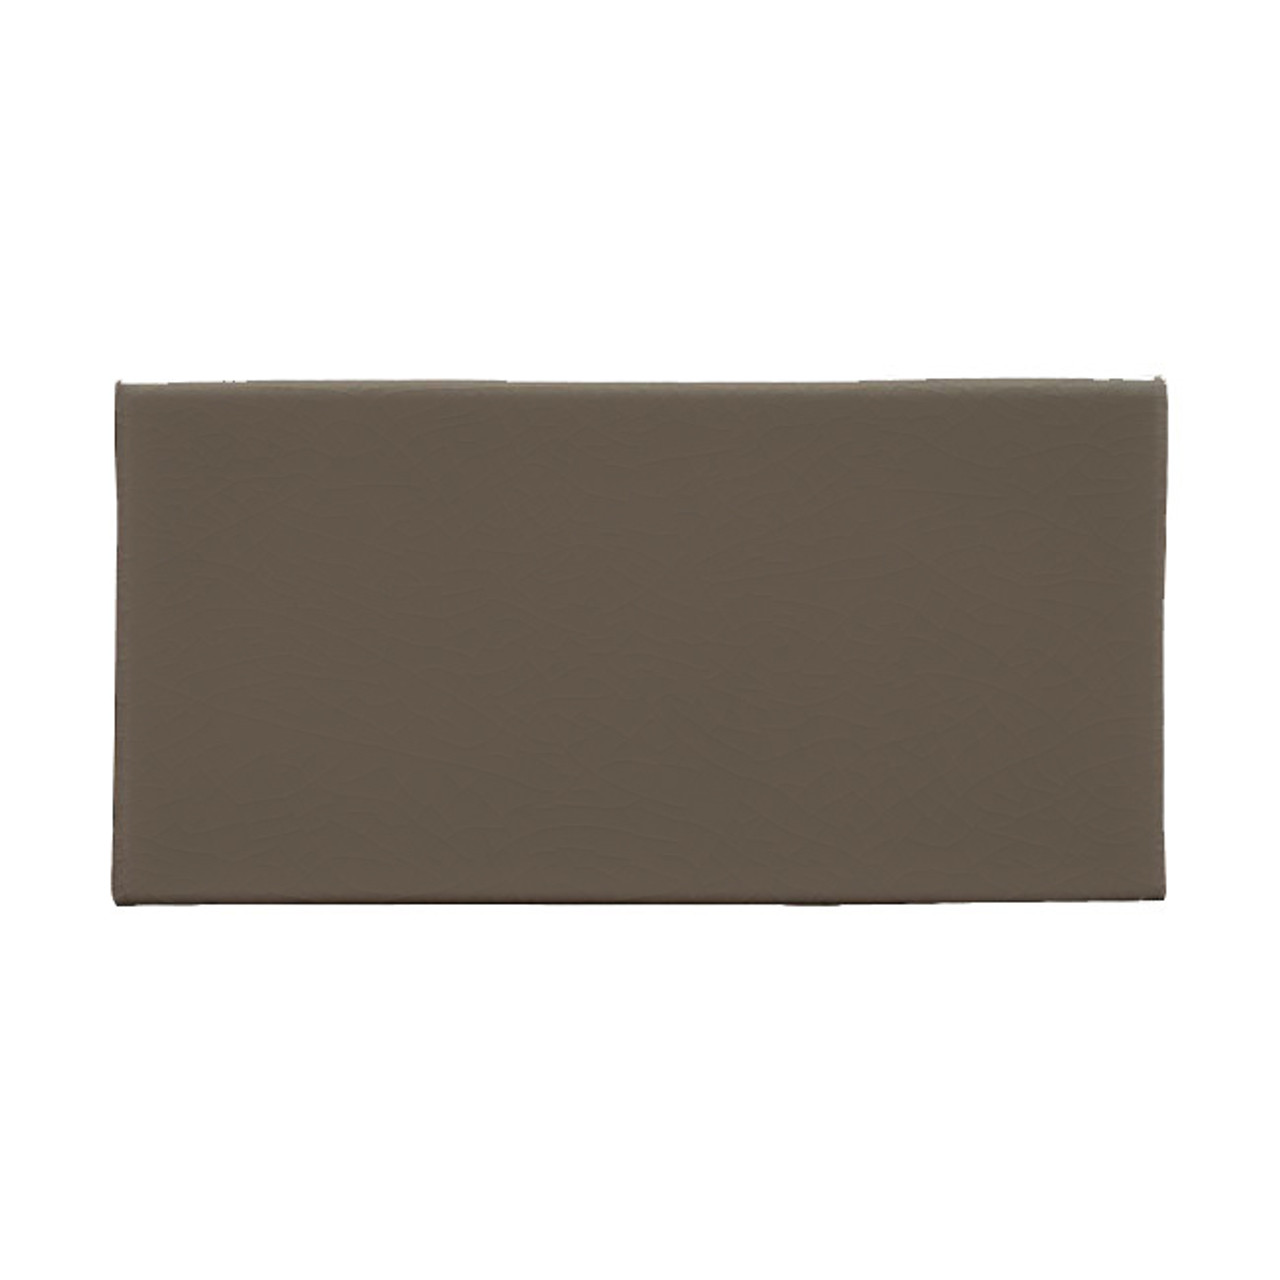 Studio Timberline Hand Molded 2 8x5 8 Tiles Direct Store